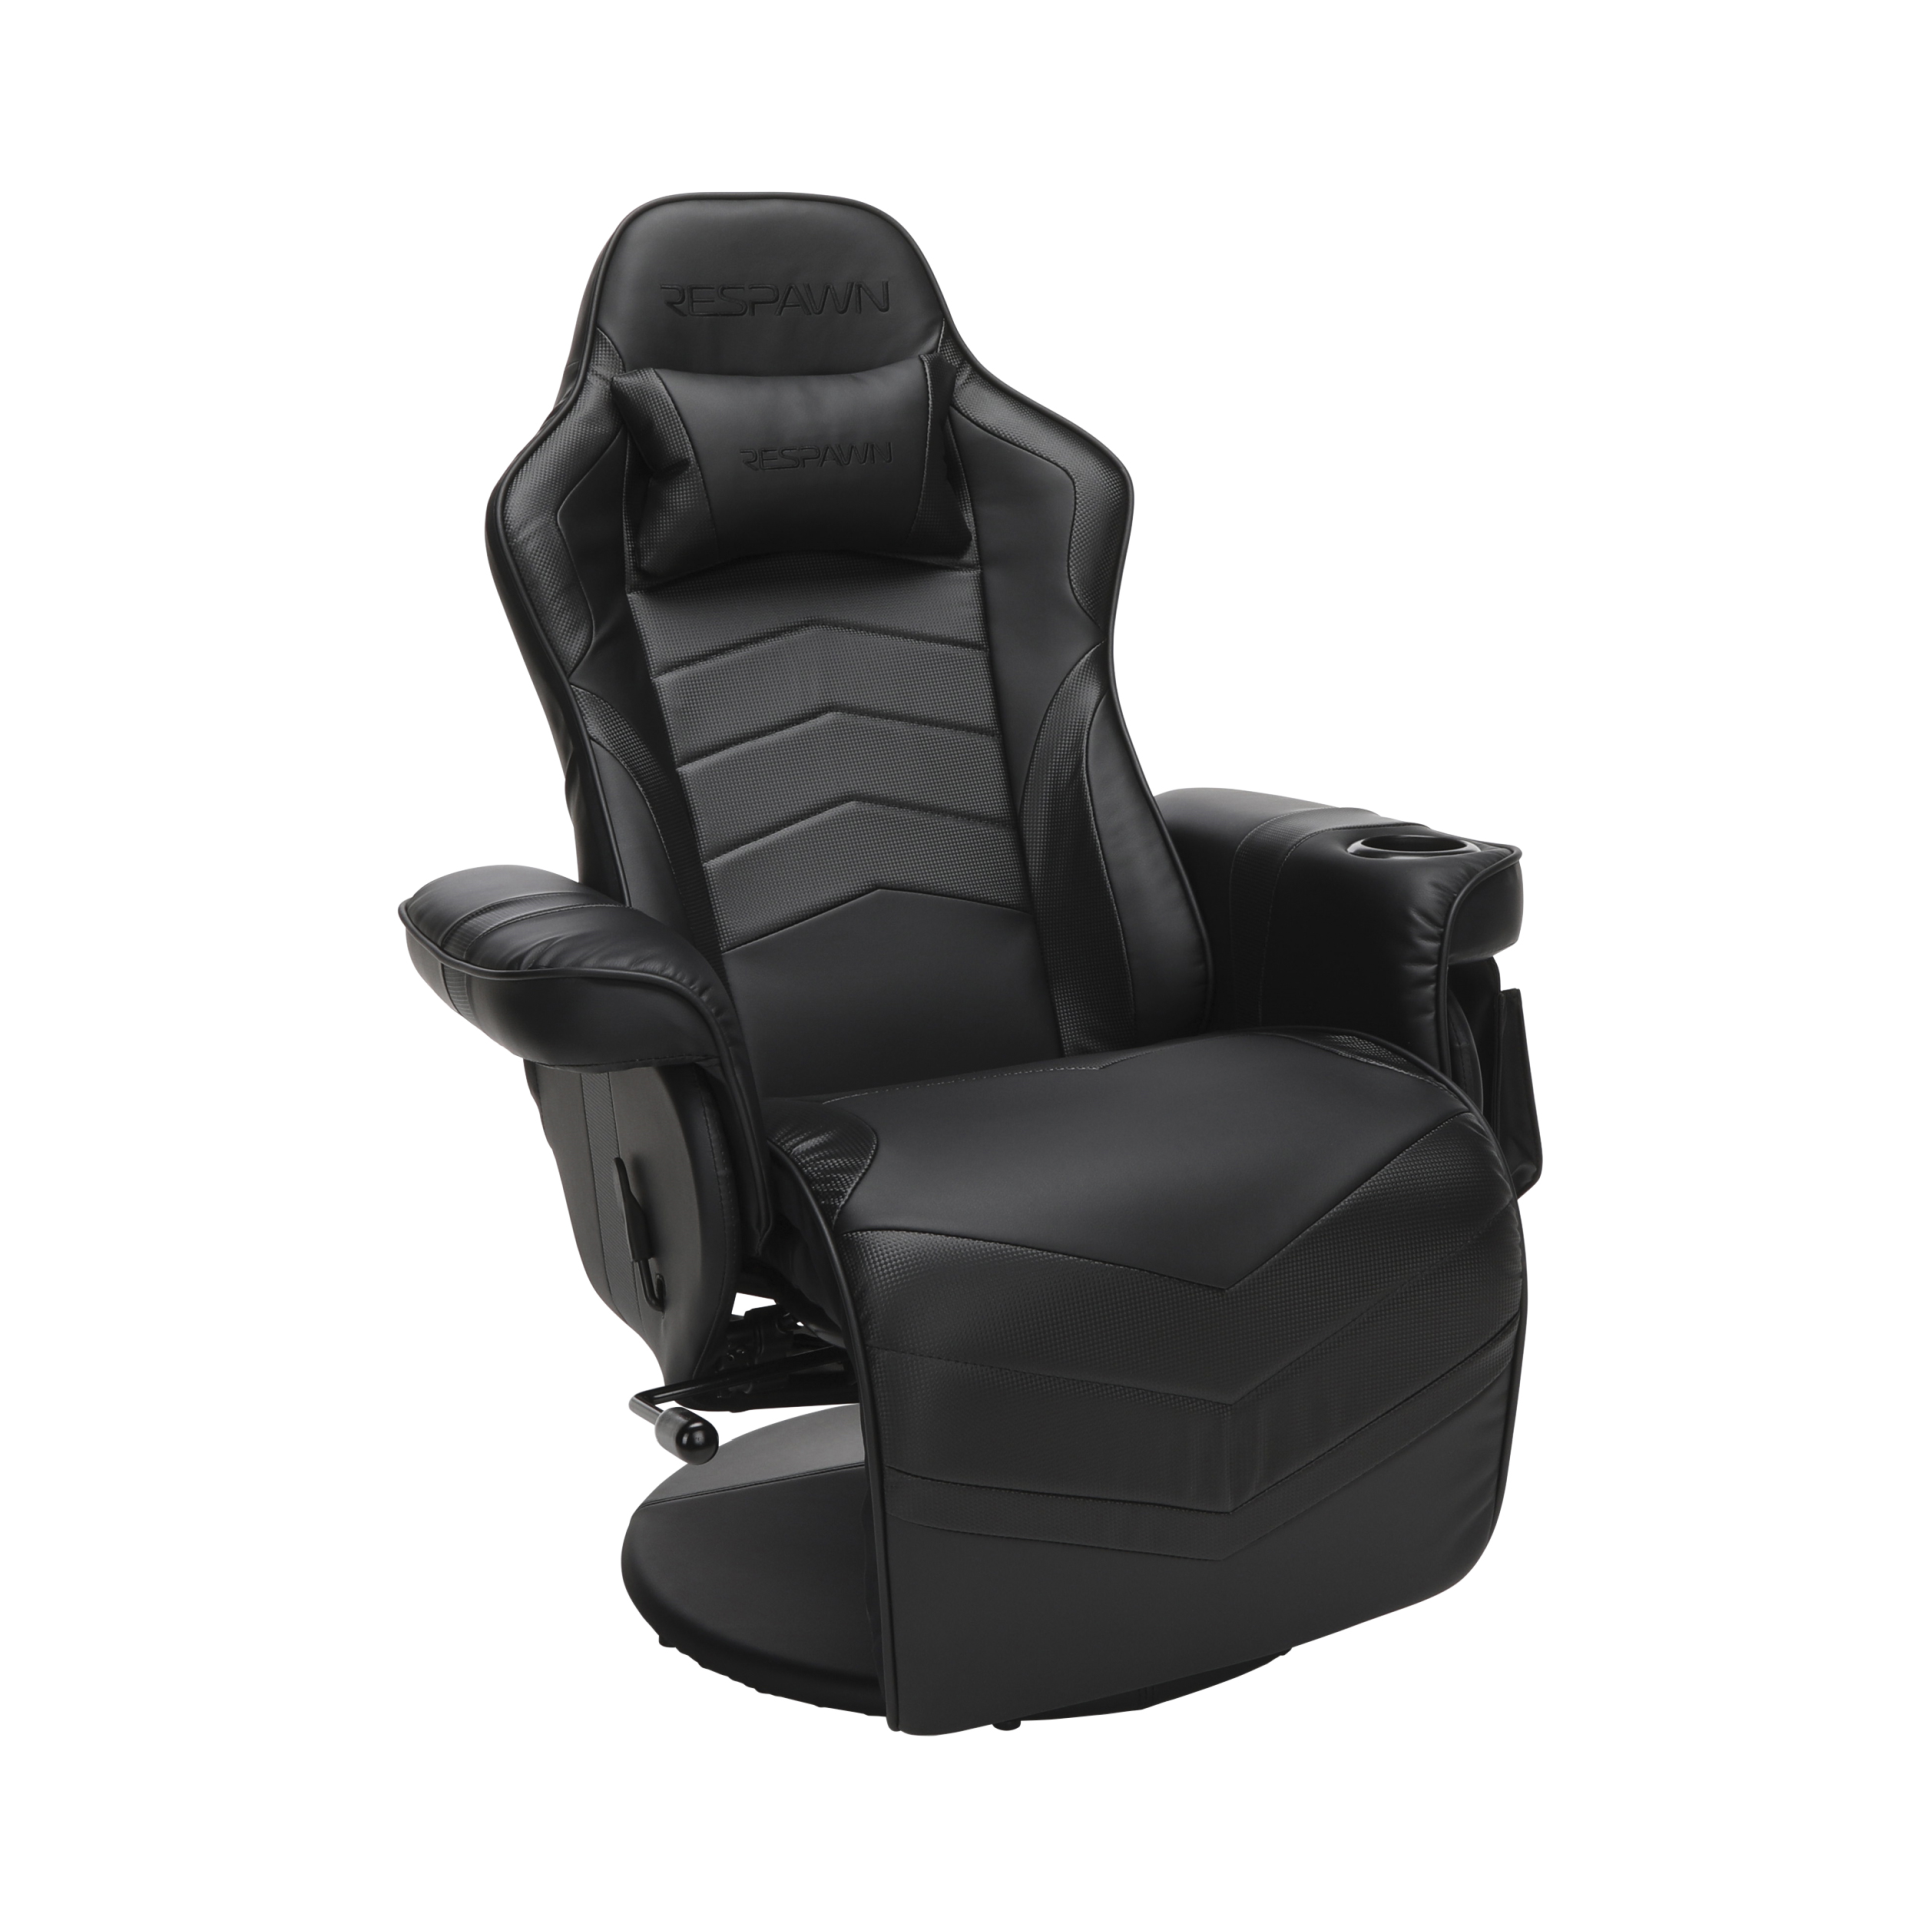 RESPAWN RSP-900 Gaming Chair Review